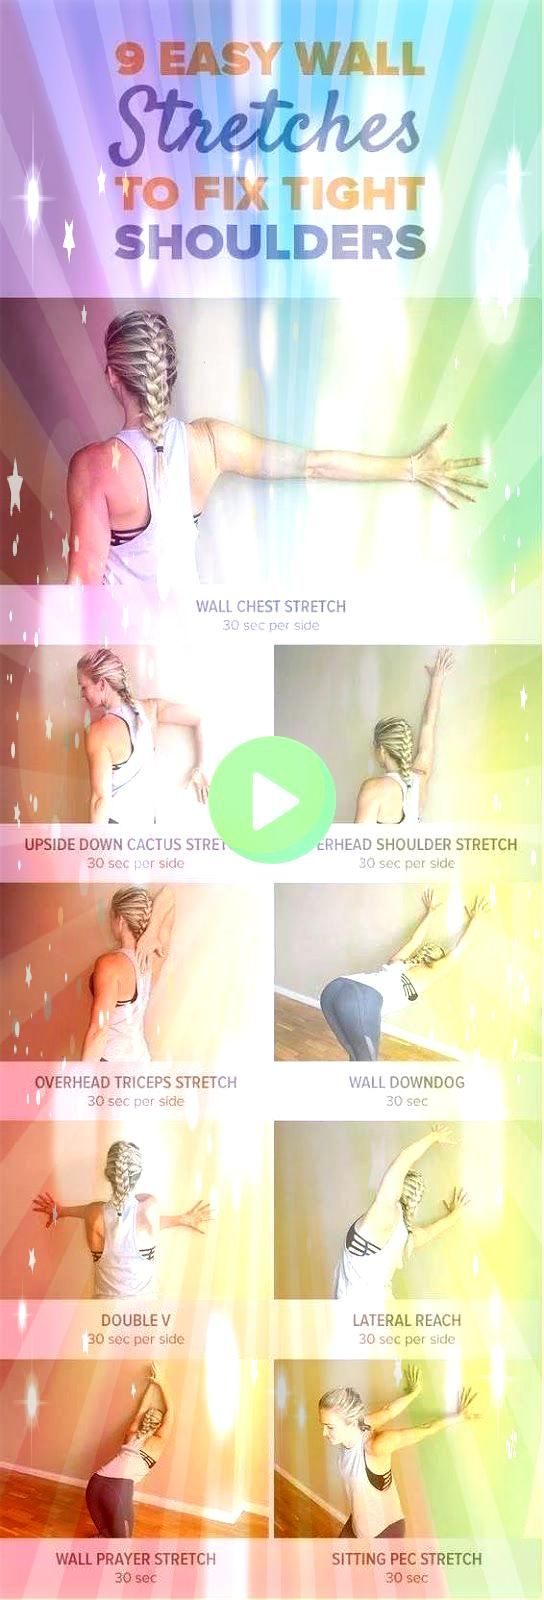 Effective And Easy Wall Stretches to Fix Tight Shoulders  Awesome Health Tips9 Effective And Easy Wall Stretches to Fix Tight Shoulders  Awesome Health Tips belly workout...